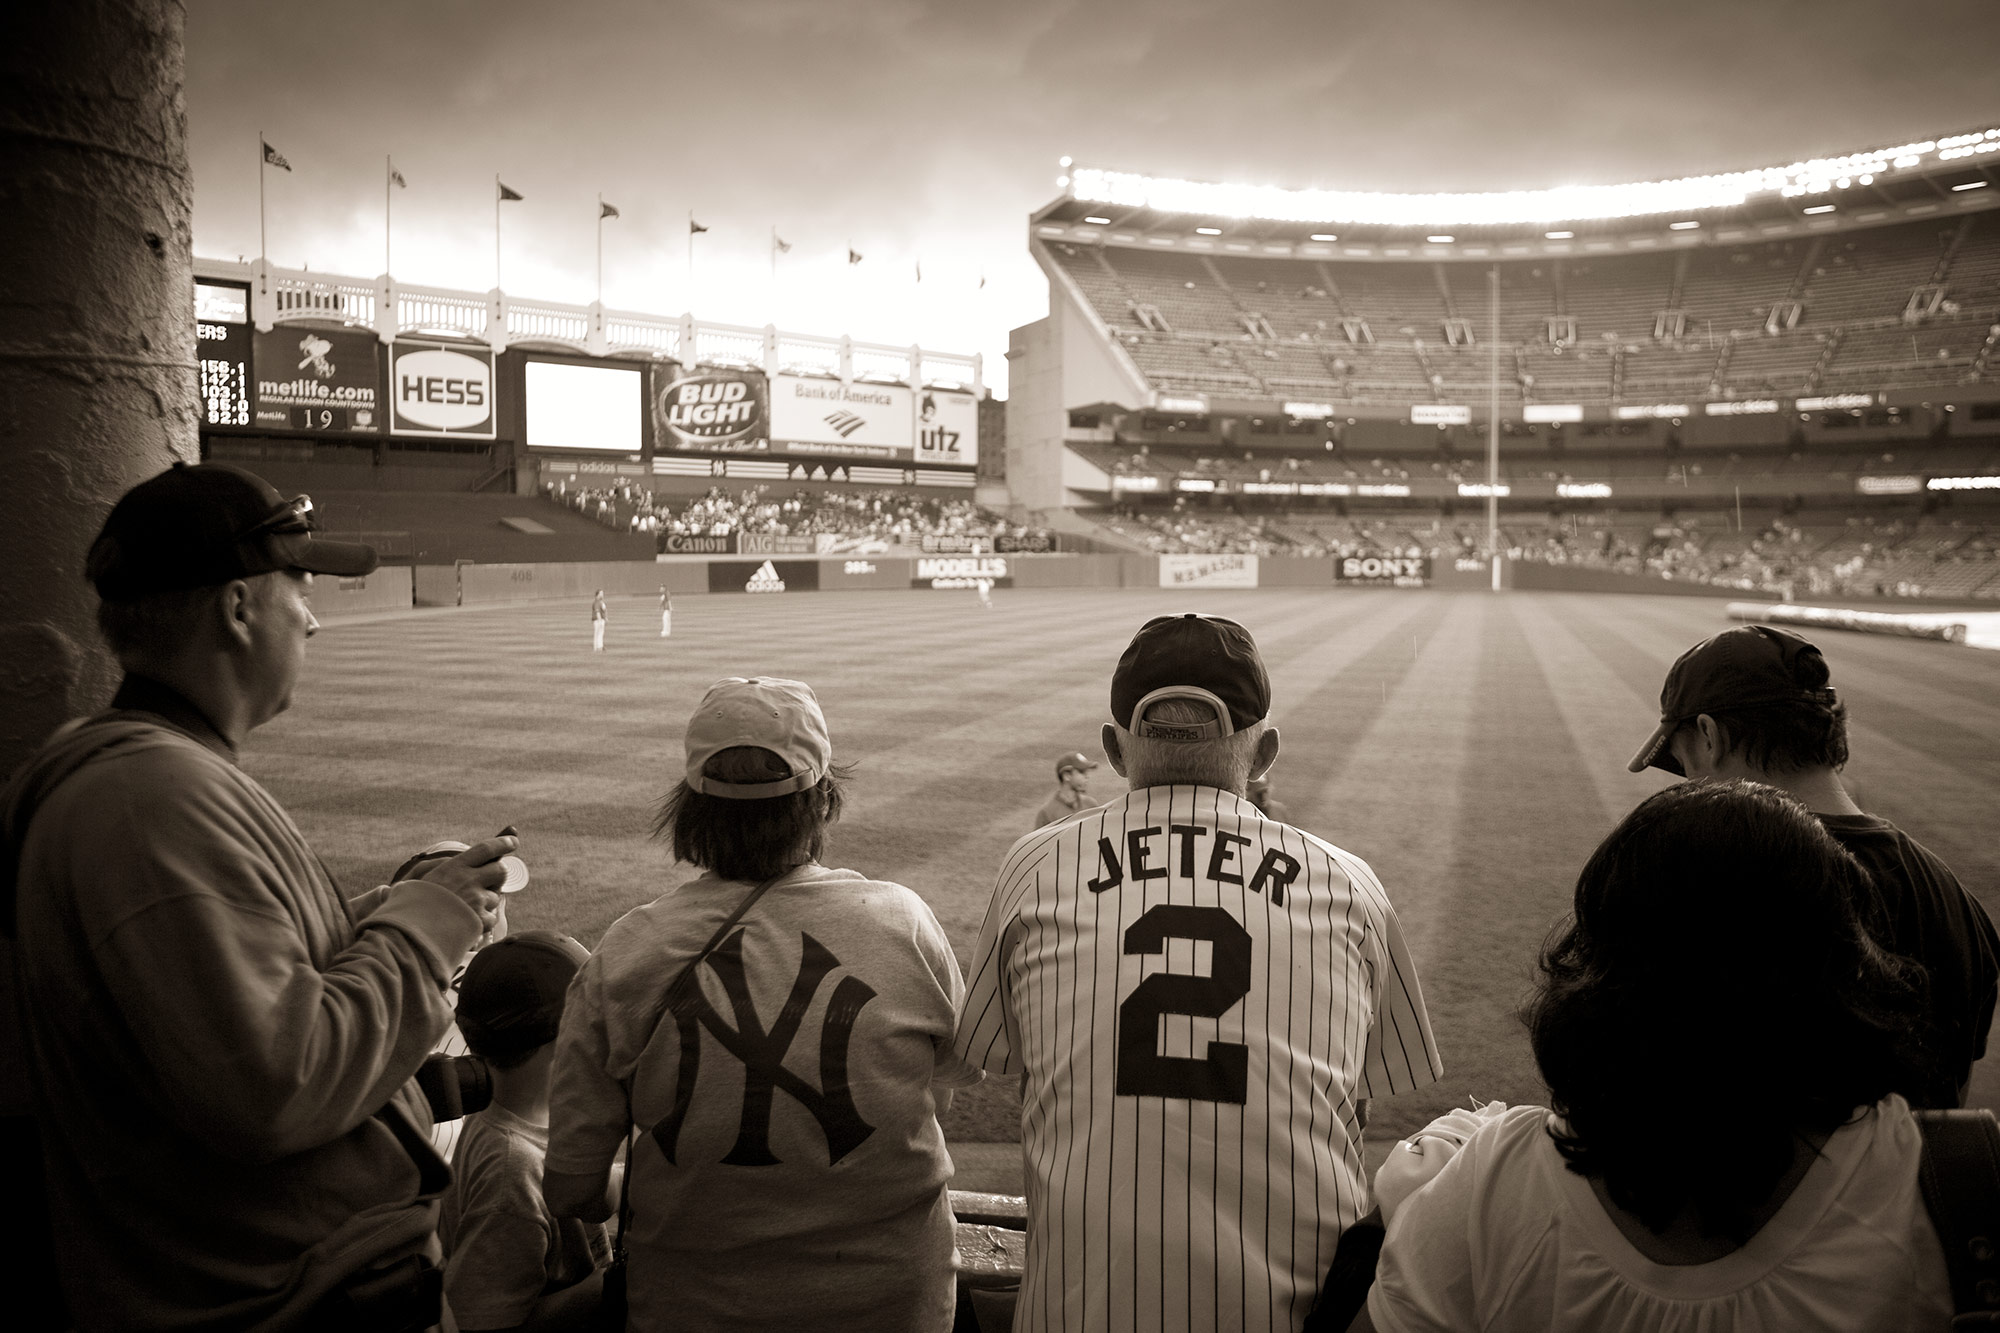 004_YankeeStadium_MG_6877bw_web_B